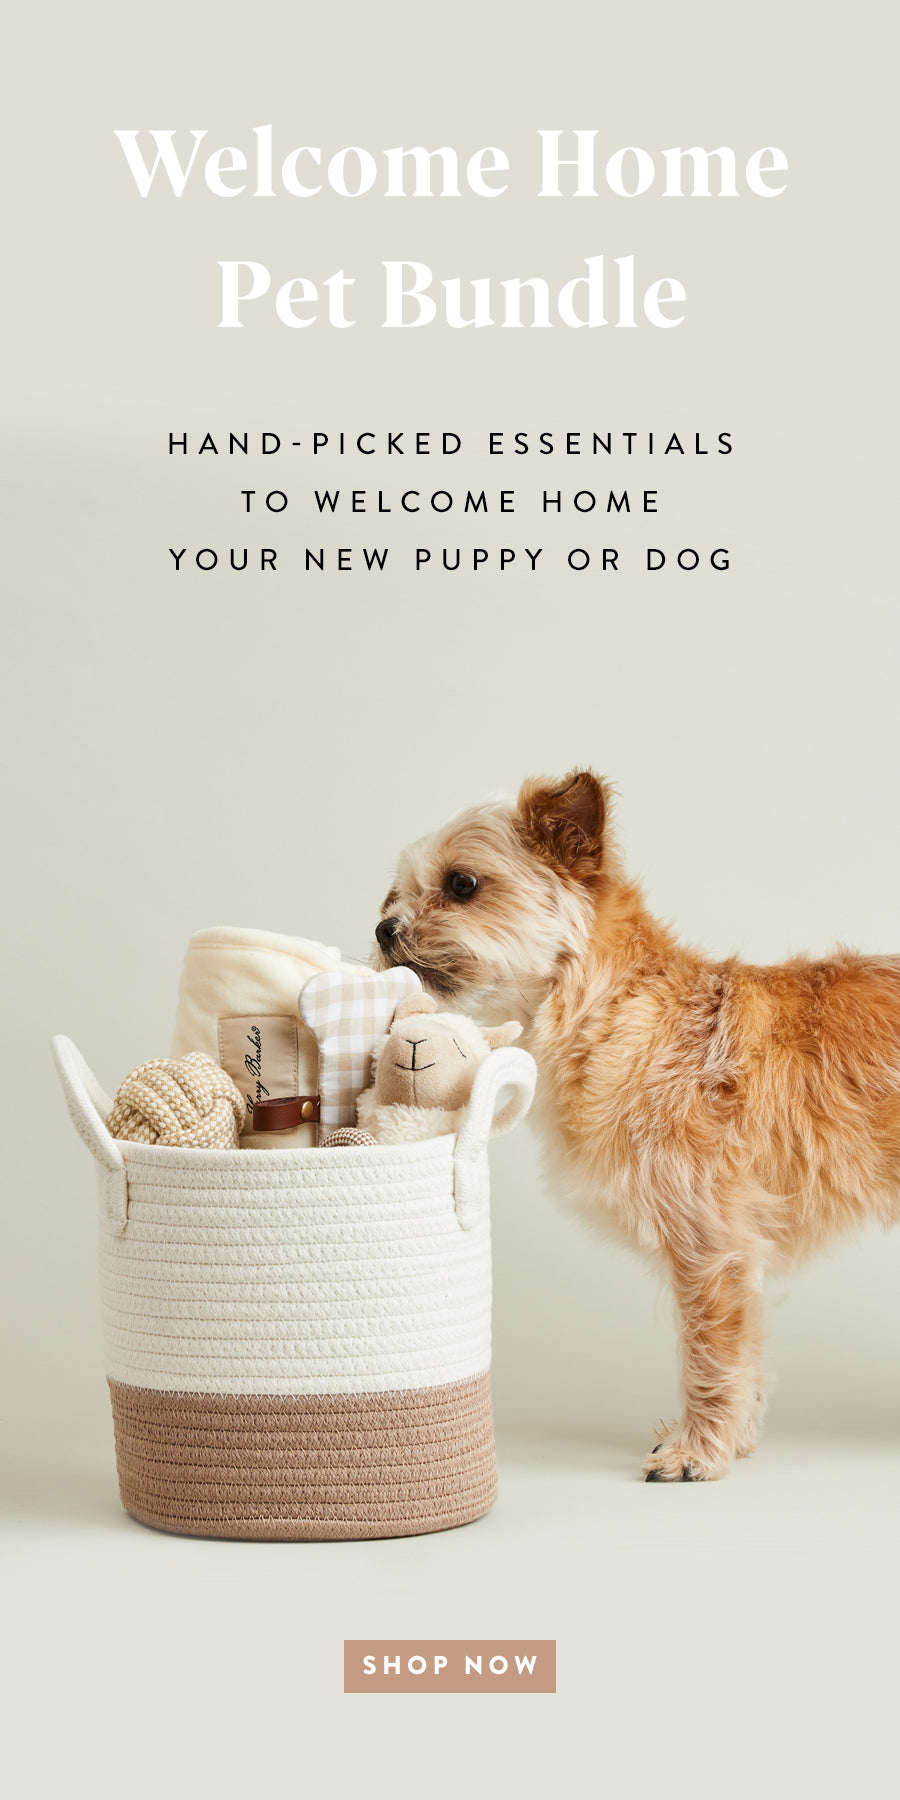 Welcome Home Pet Bundle. Hand-picked essentials to welcome home your puppy or dog. Shop Now.